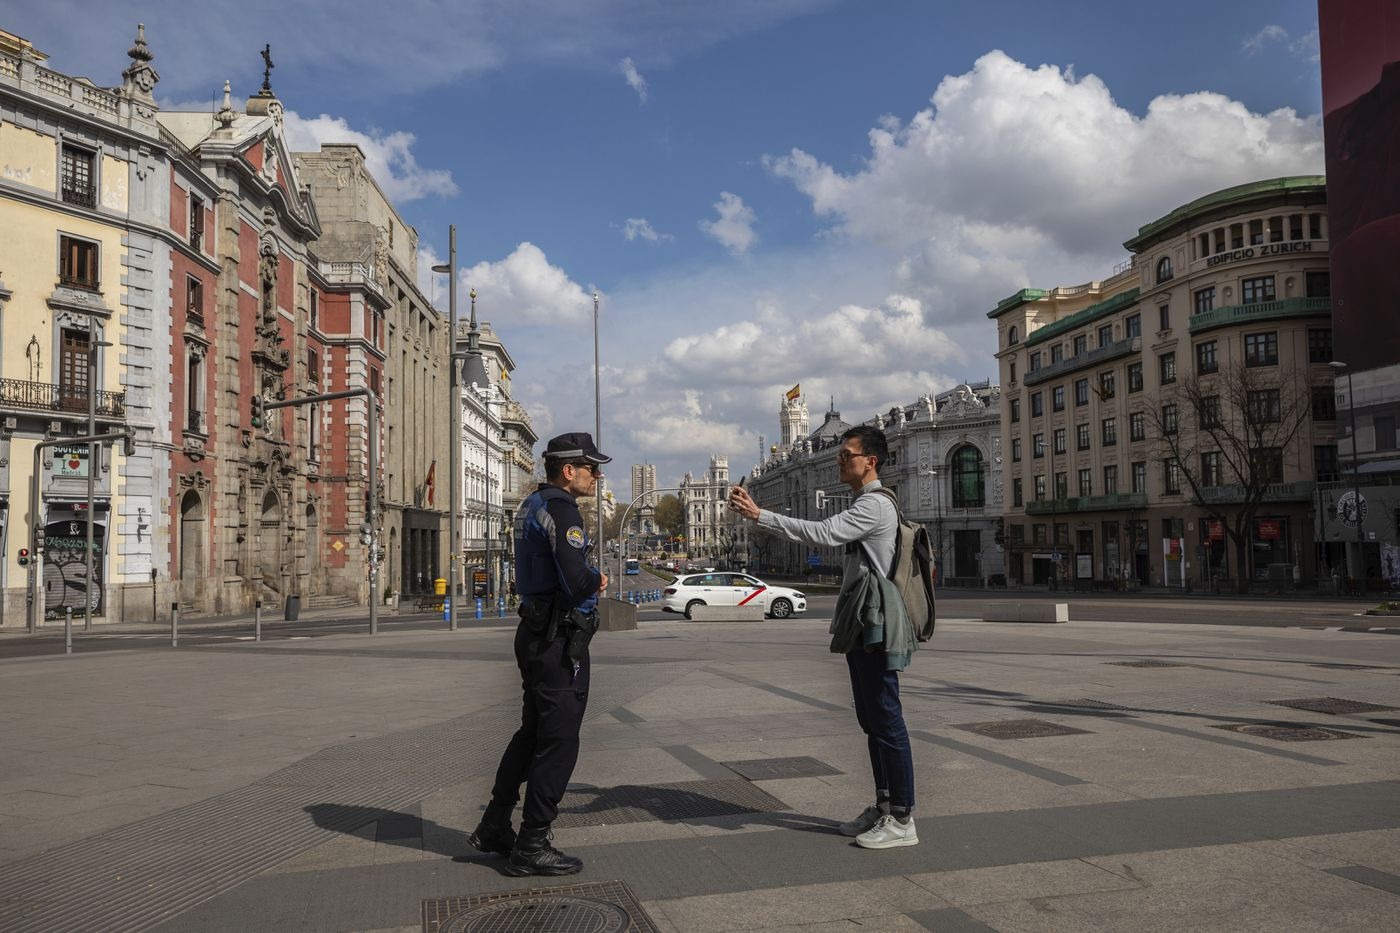 A tourist shows the location of his hotel to a local police in downtown Madrid, Spain, Sunday, March 15, 2020. Spain awoke to its first day of a nationwide quarantine on Sunday after the government declared a two-week state of emergency. The government imposed the special measures including the confinement of people to their homes unless shopping for food and medicine, going to and from work, and to meet other basic needs. The vast majority of people recover from the new coronavirus. According to the World Health Organization, most people recover in about two to six weeks, depending on the severity of the illness. (AP Photo/Bernat Armangue)